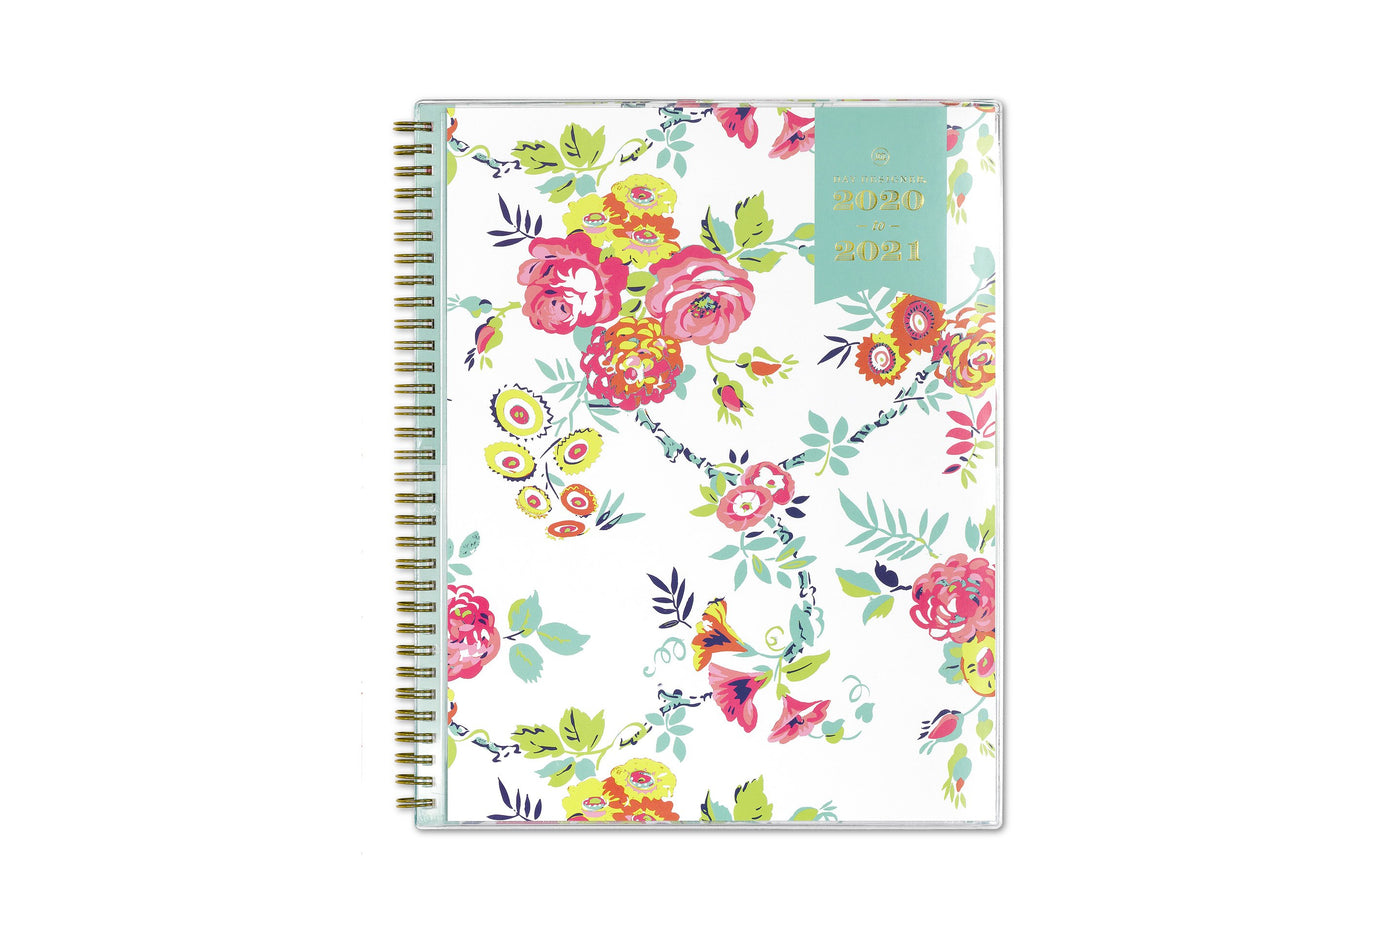 2020-2021 academic school planner with white background and floral patterns